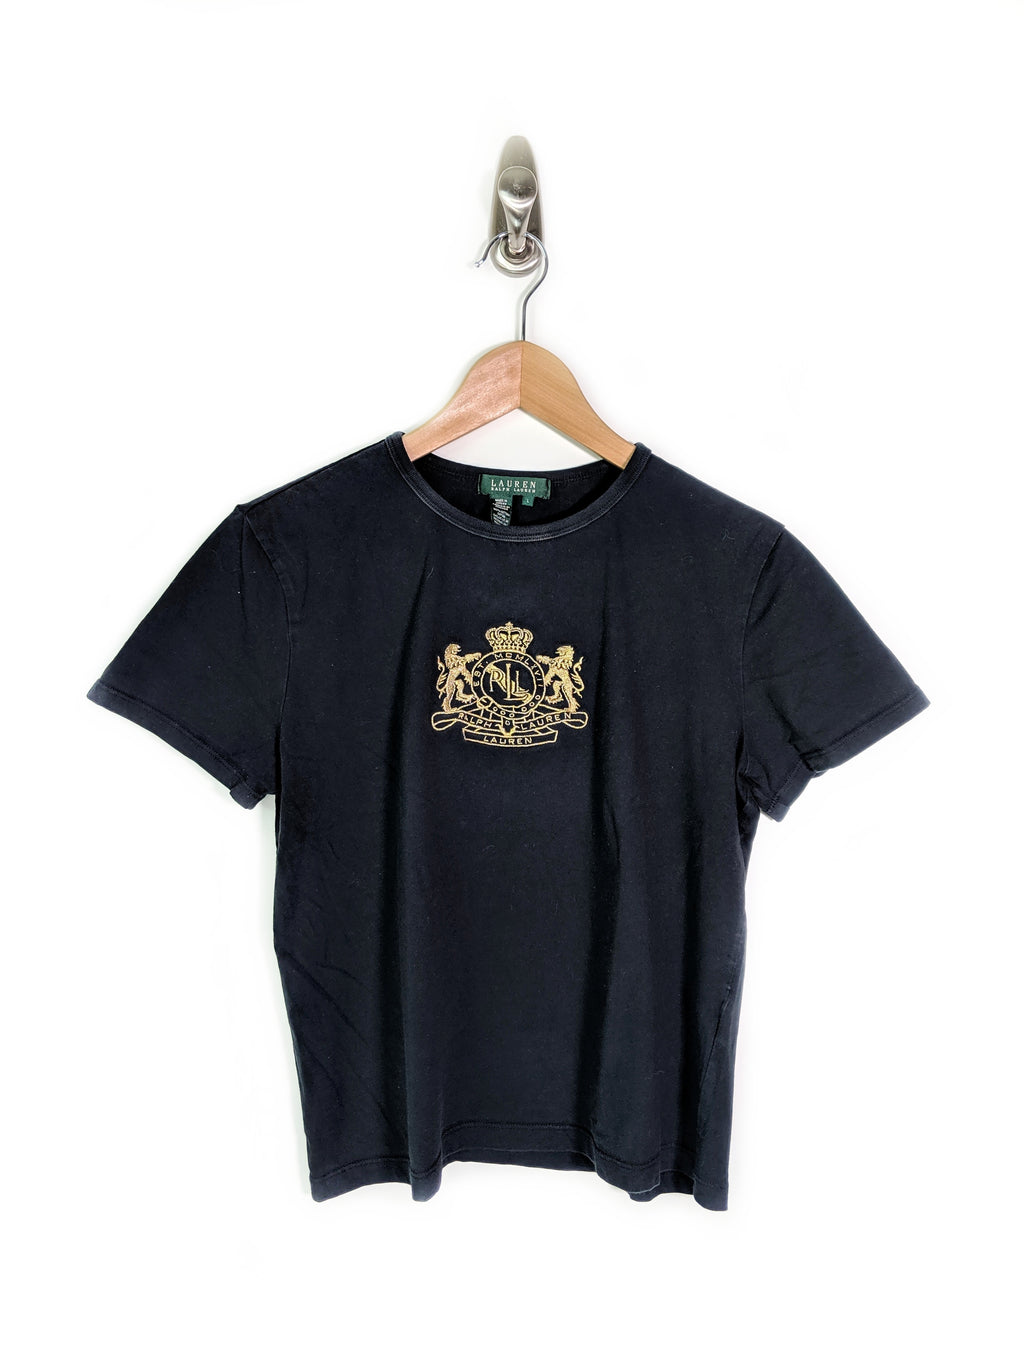 L.R.L. Embroidered Tee - Women's (L)